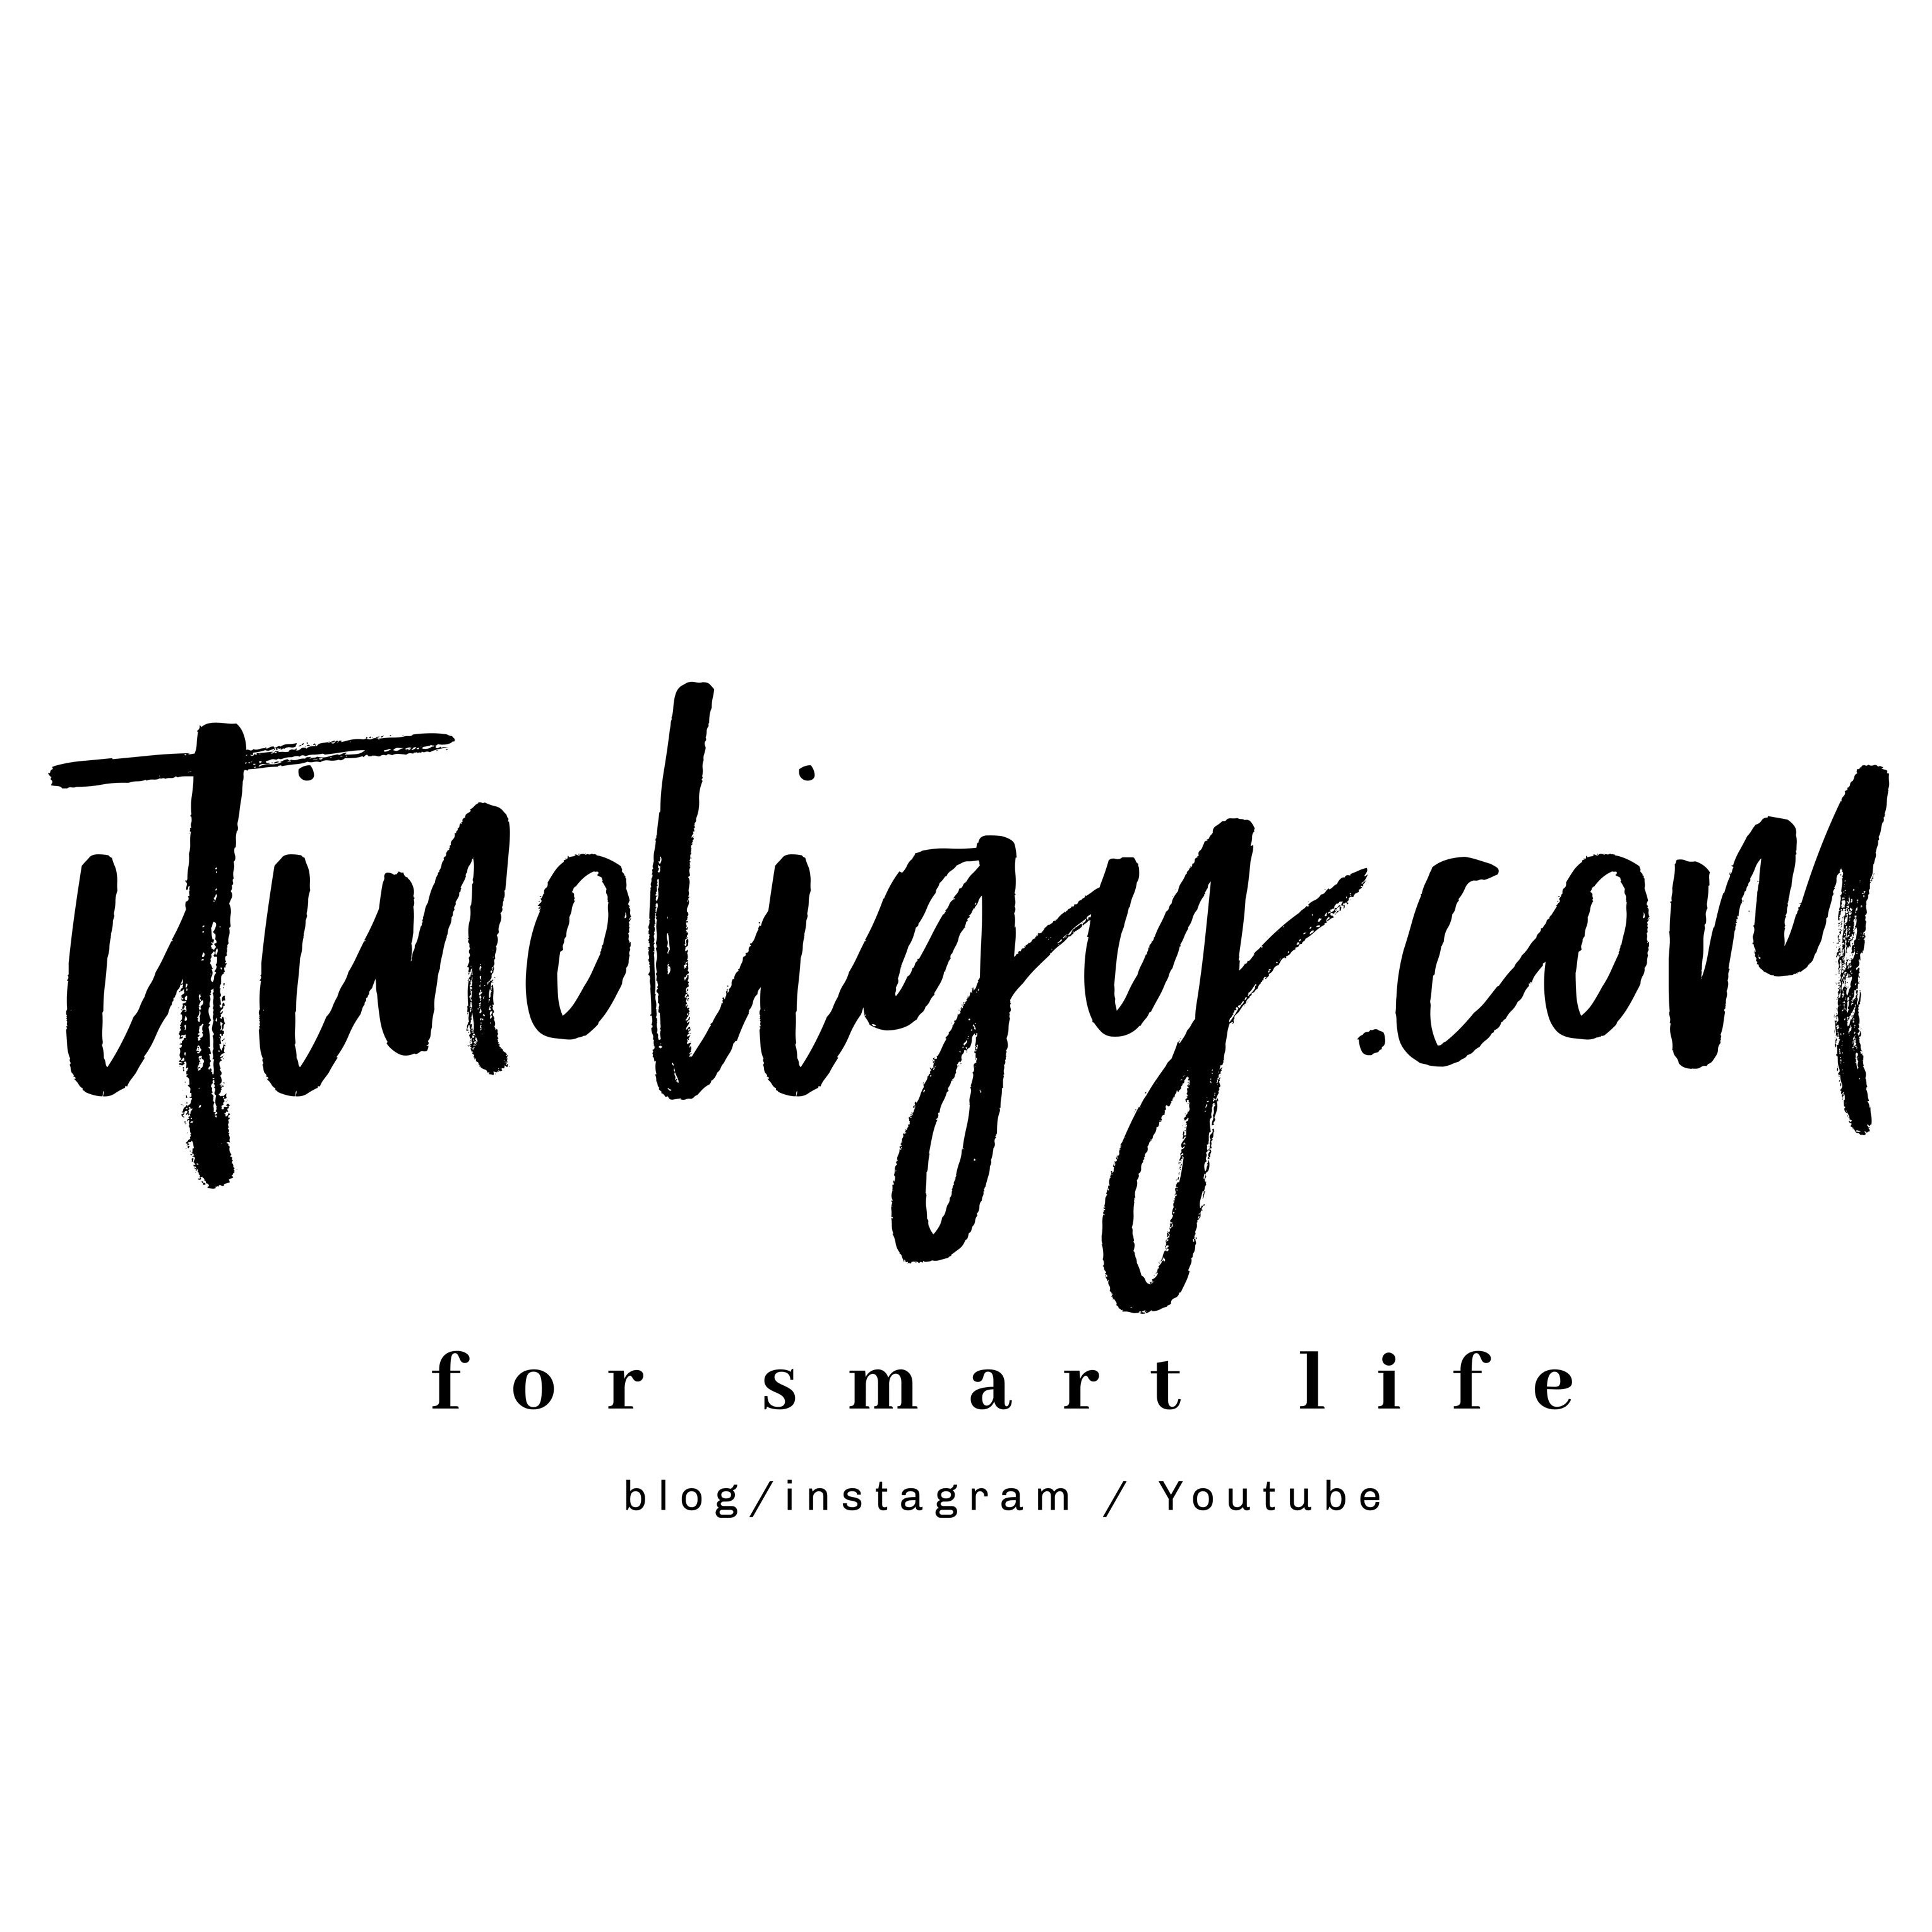 Favicon of https://itinology.com